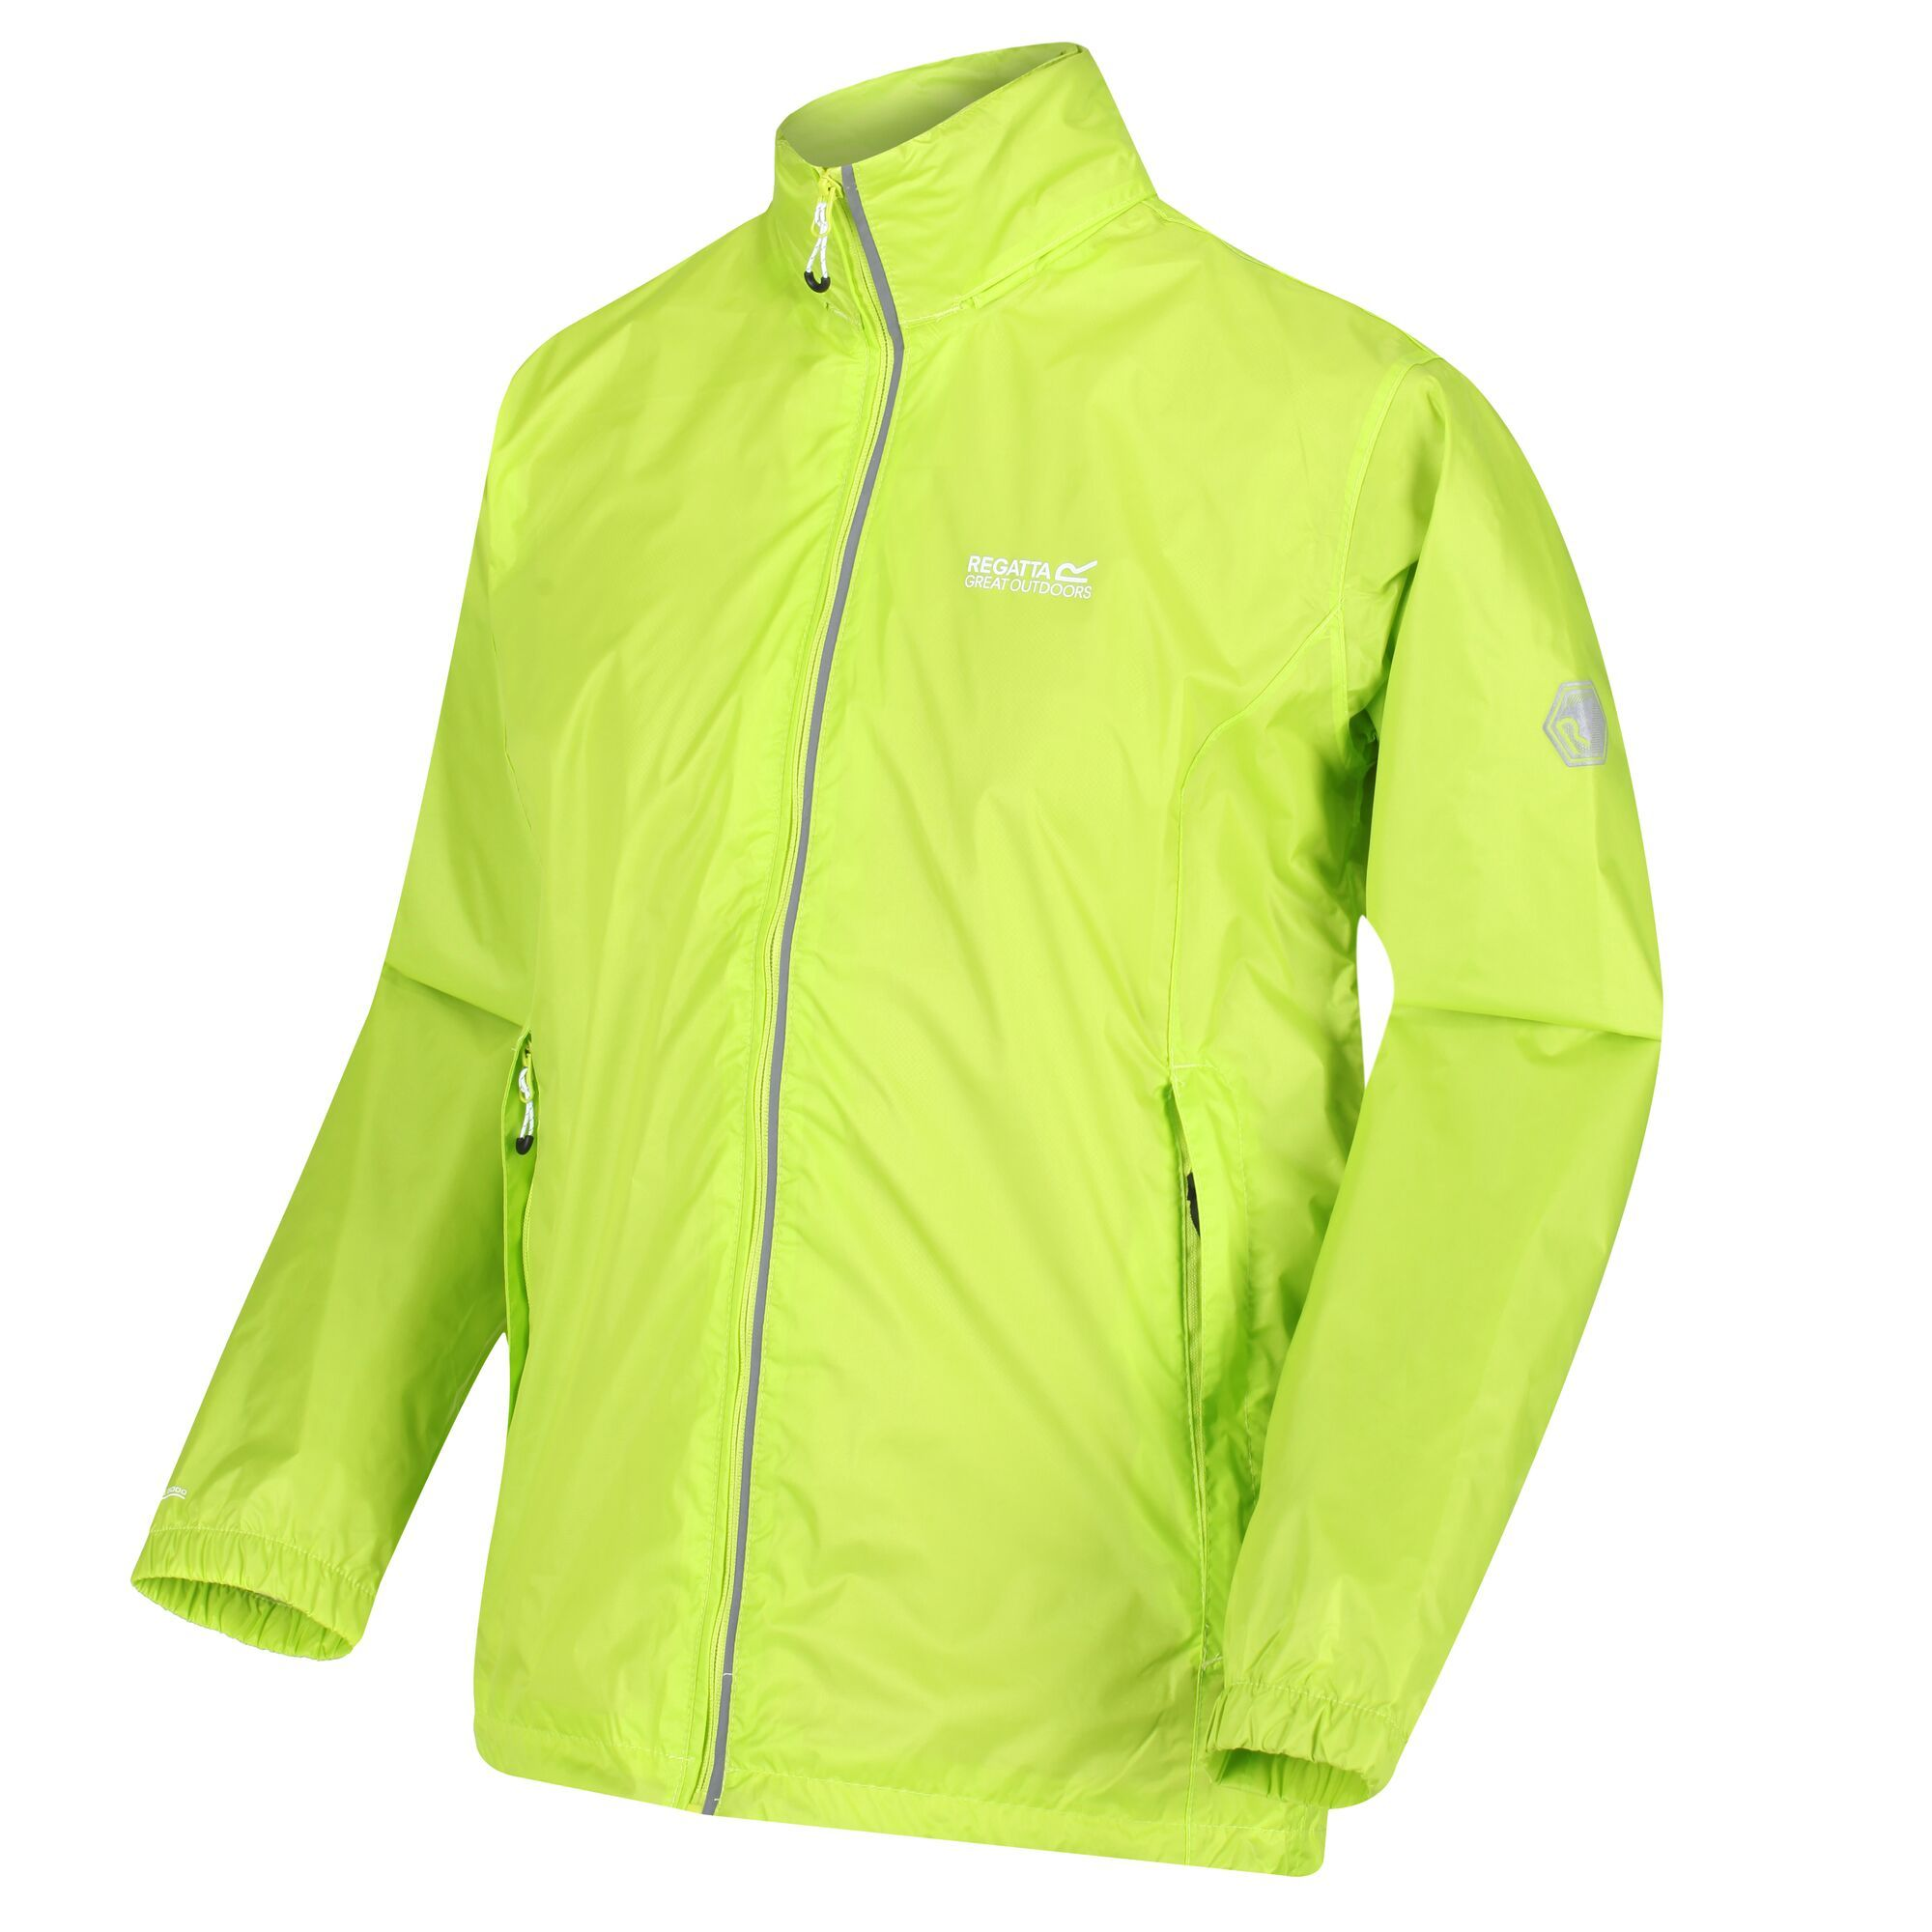 Mens-Regatta-Lightweight-Waterproof-Windproof-Jacket-Clearance-RRP-70-00 thumbnail 33